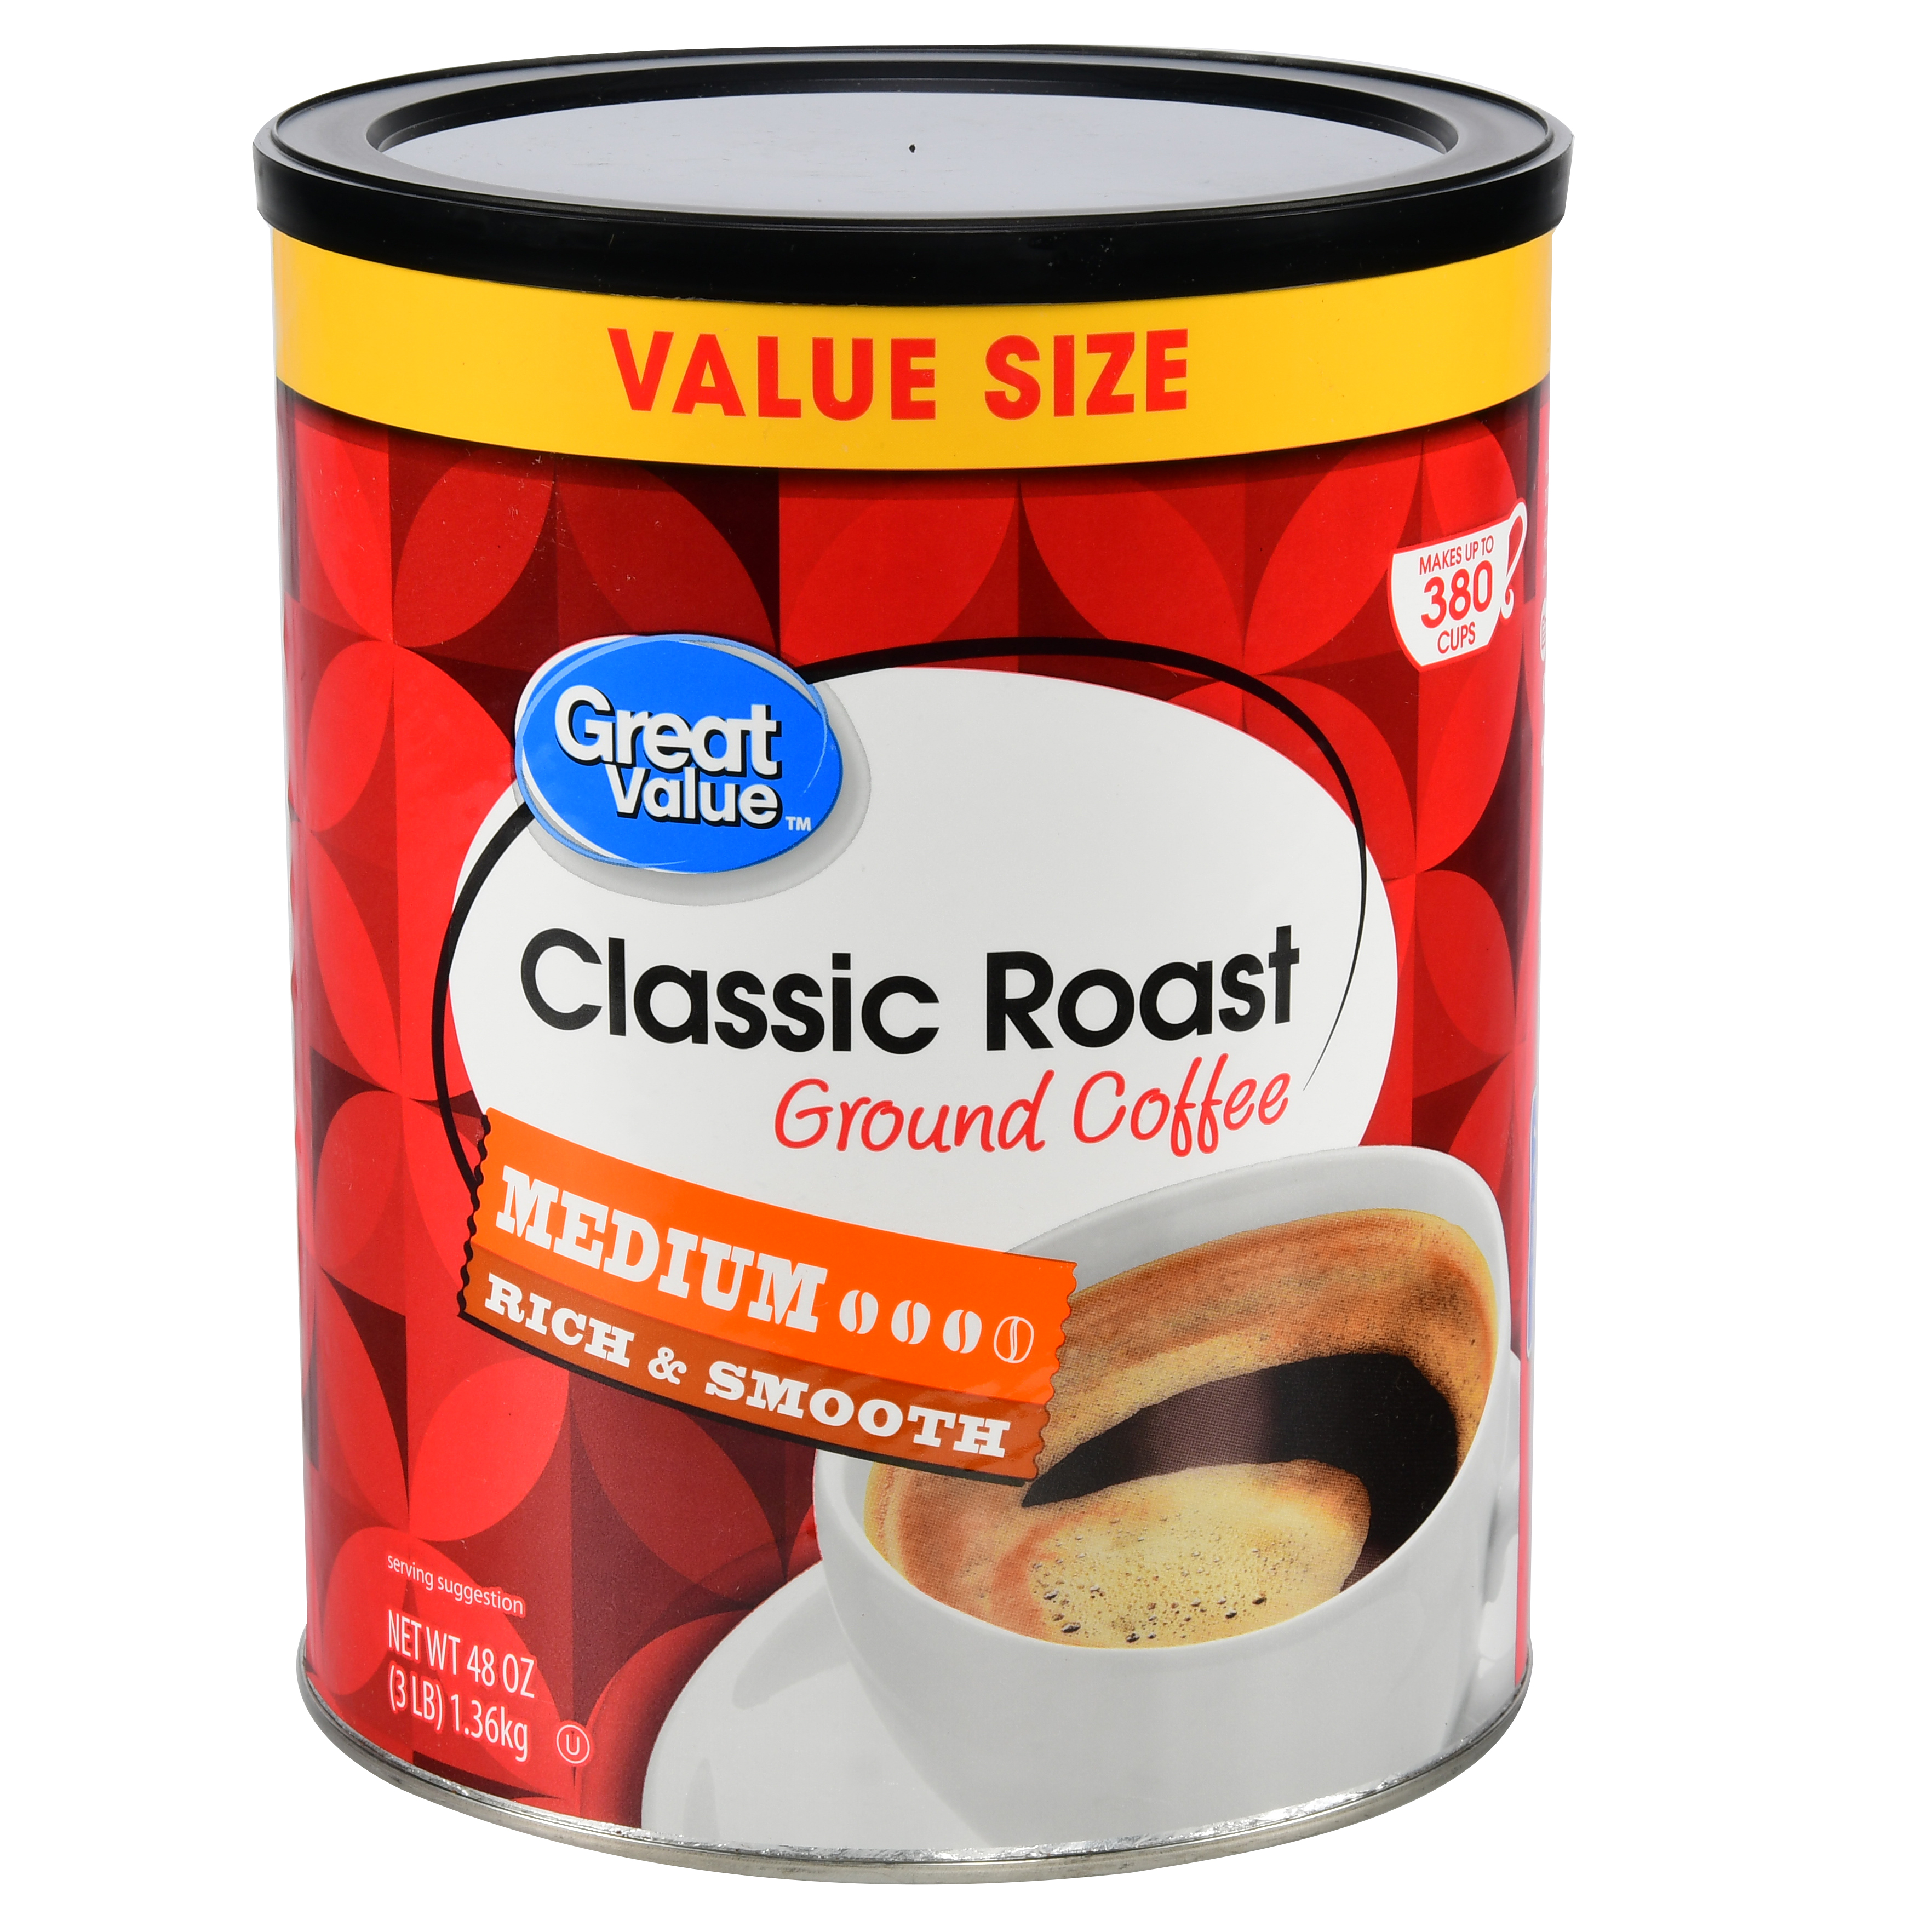 Great Value Classic Roast Ground Coffee, Medium Roasted, 48 oz